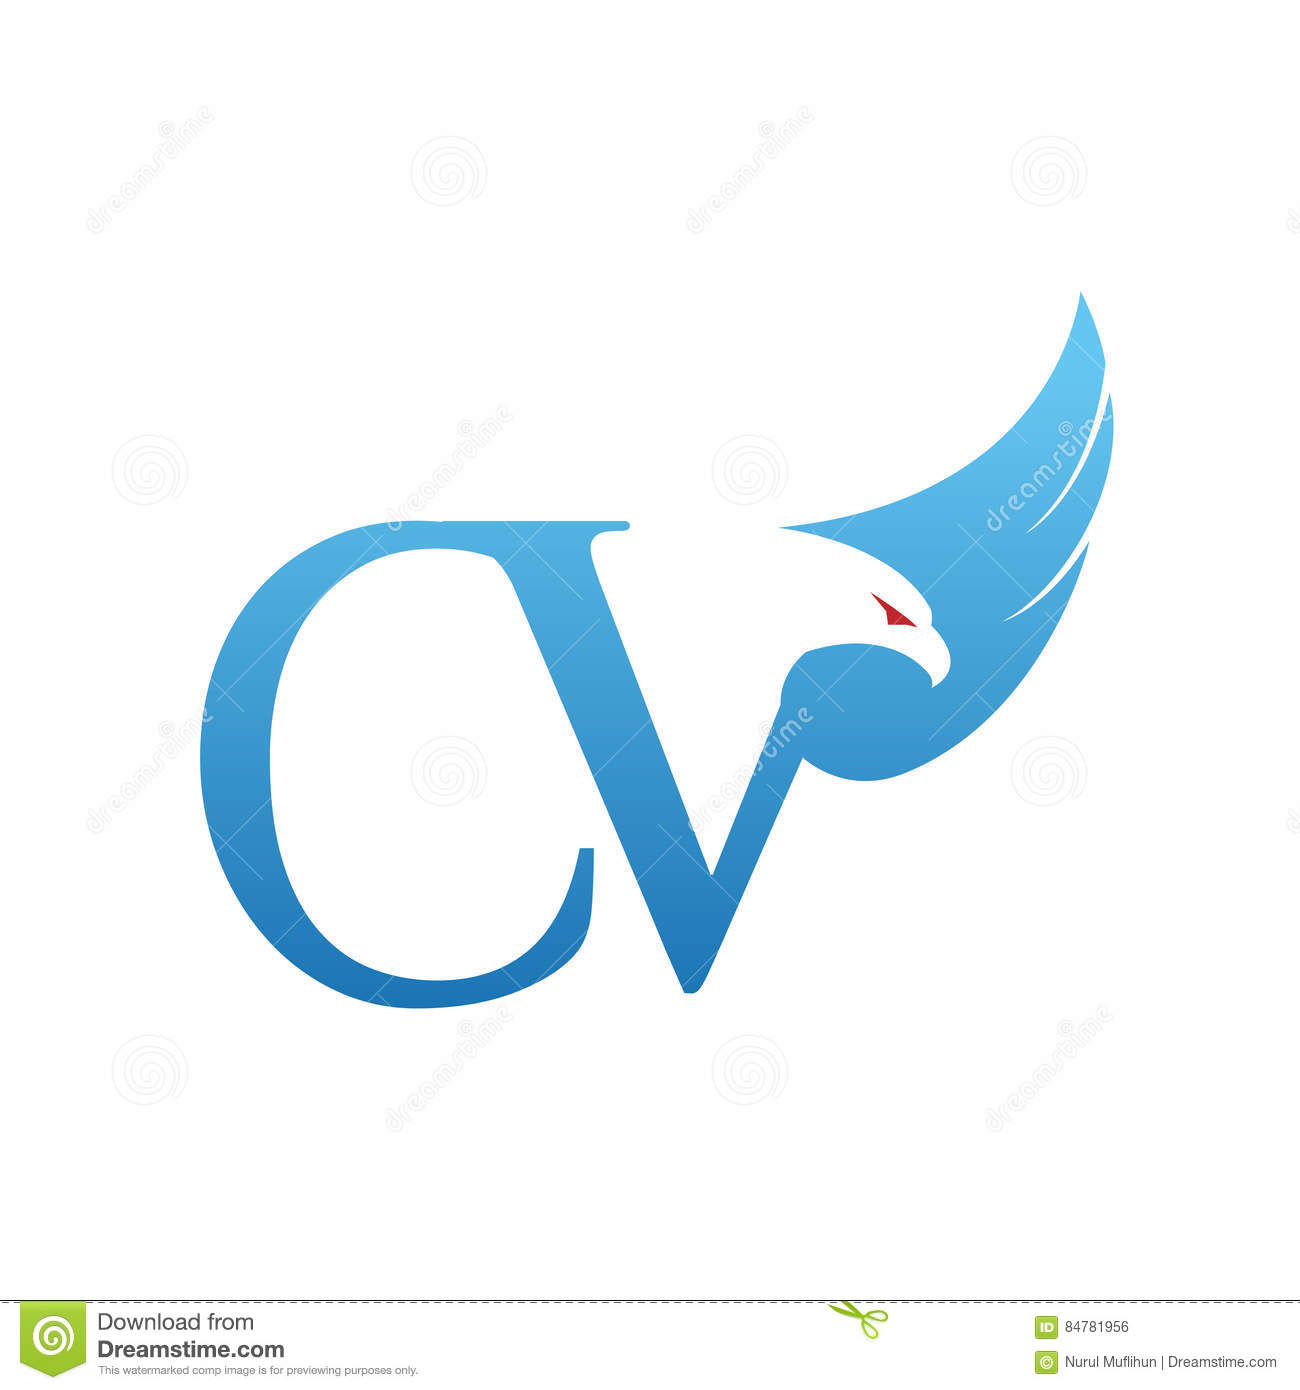 logo bleu de cv de hawk initial de vecteur illustration de vecteur